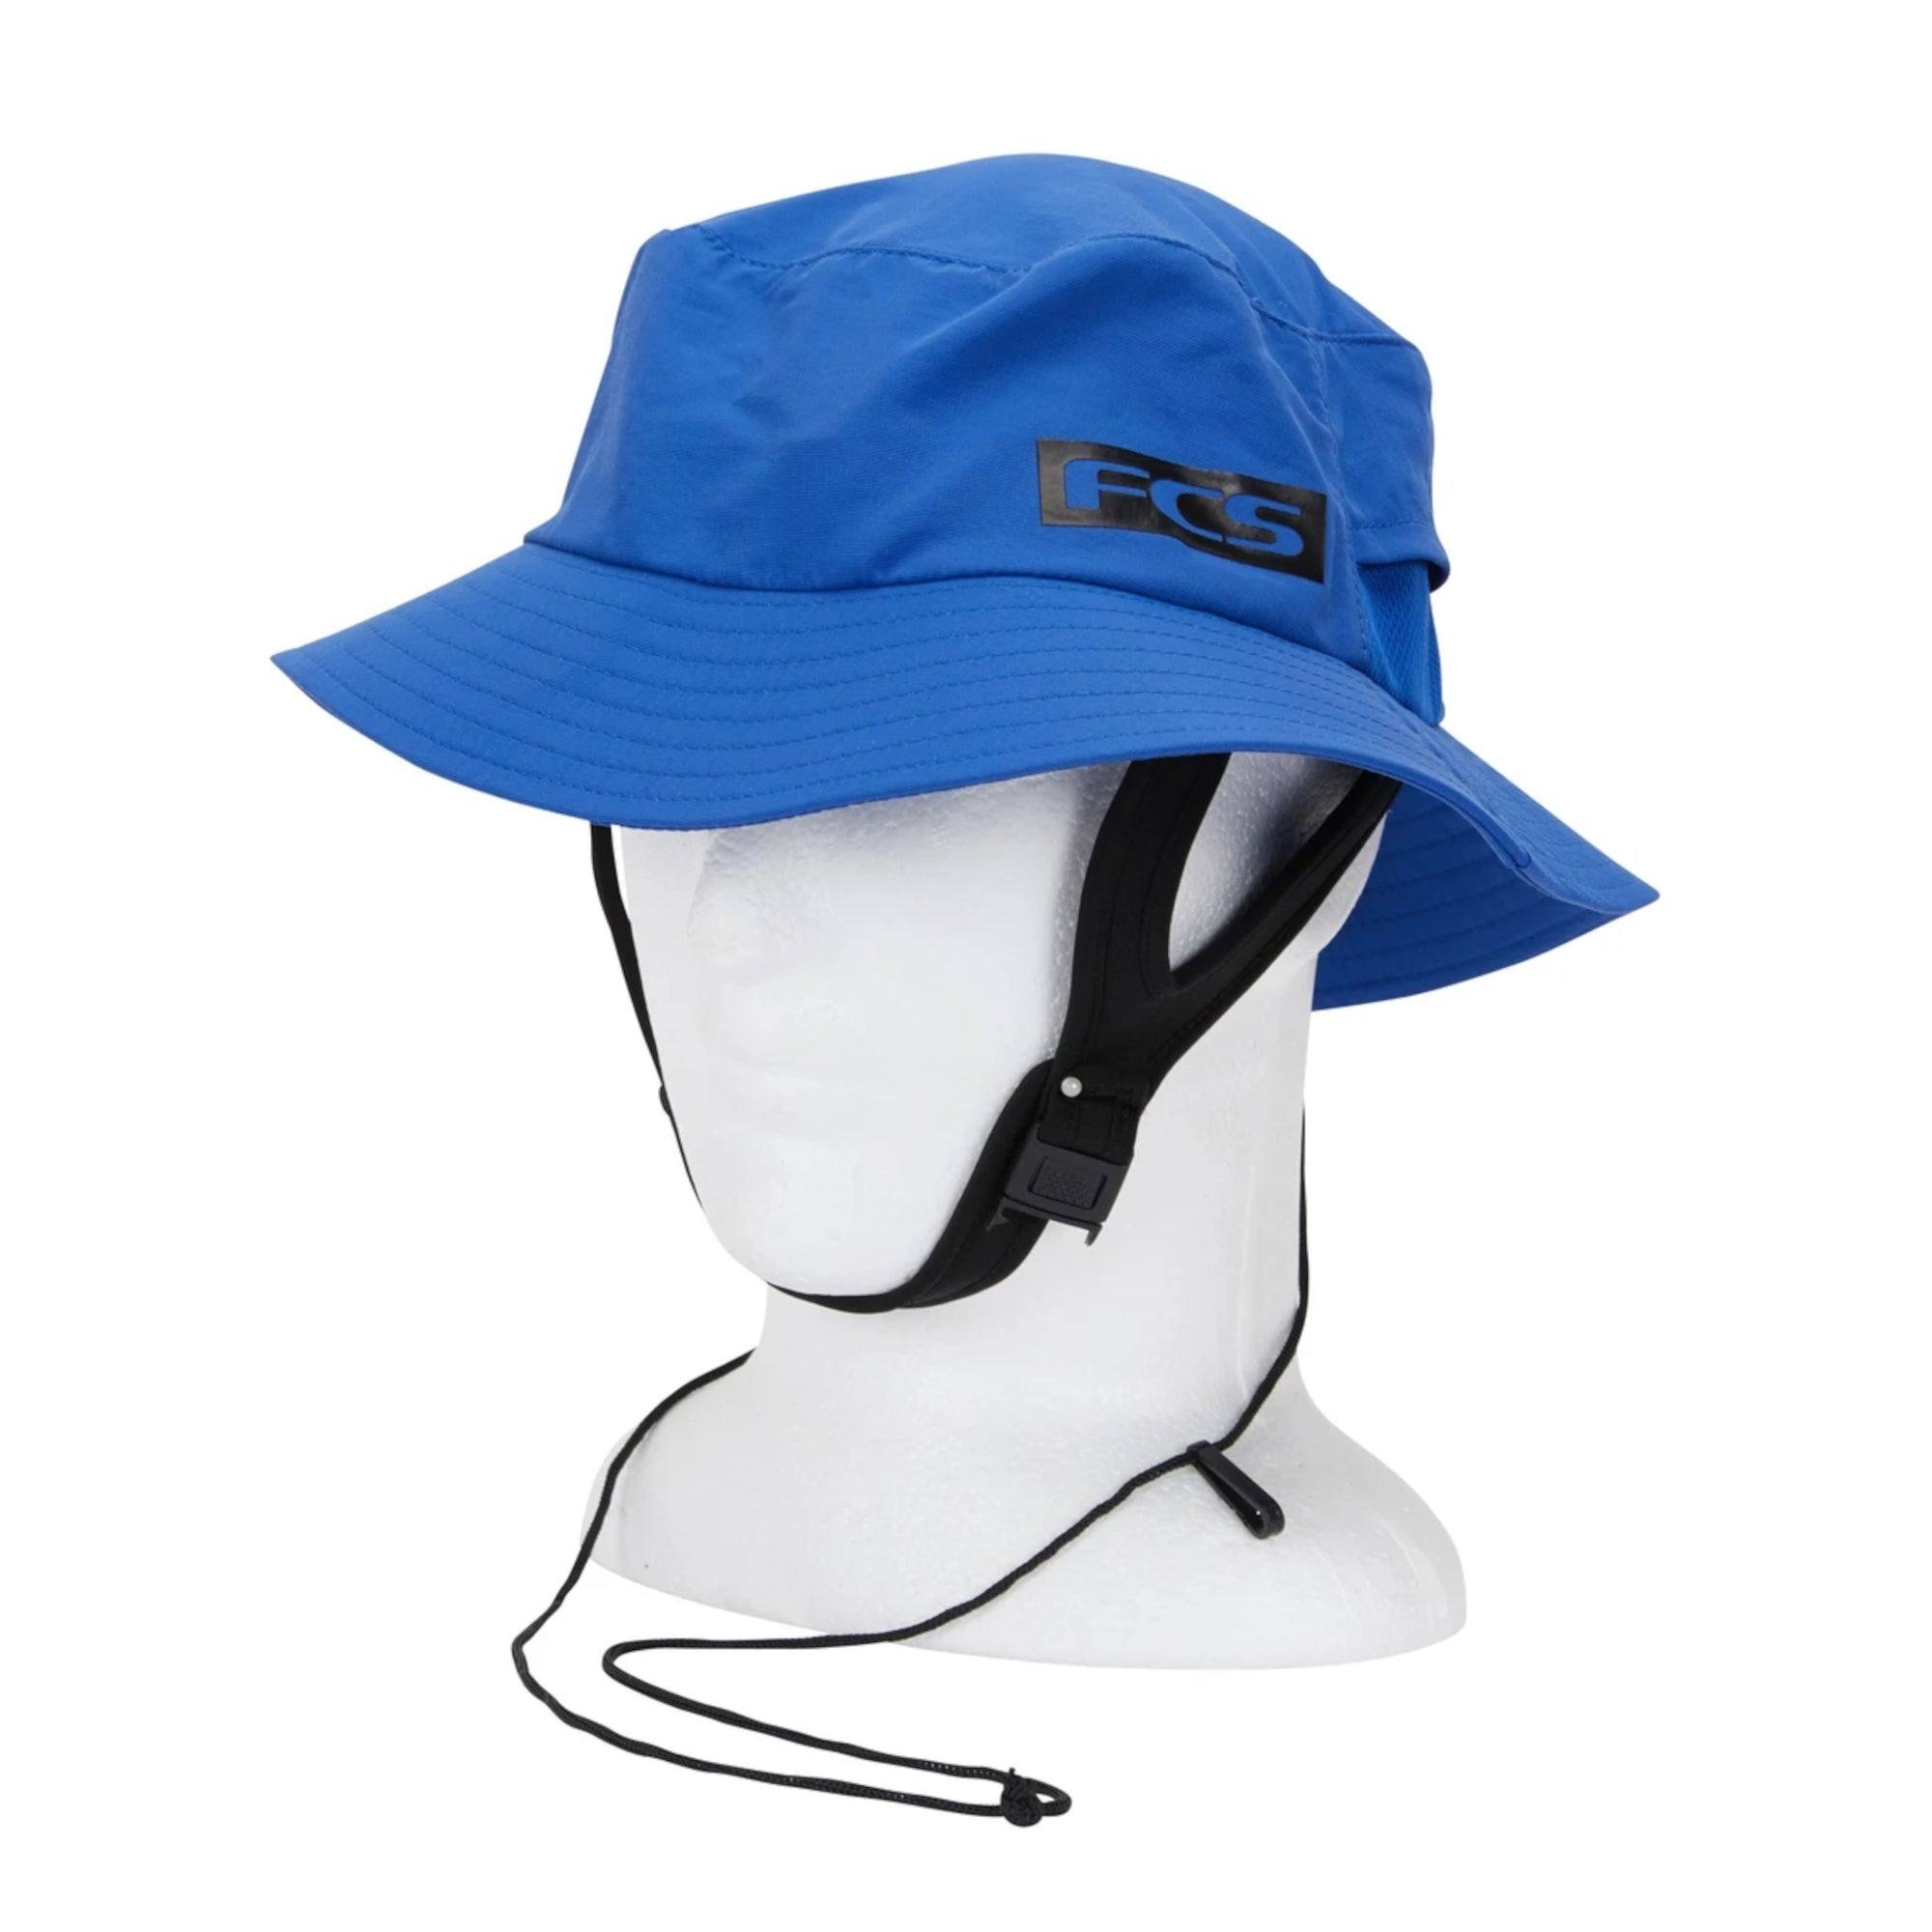 FCS Essentials Surf Bucket Hat